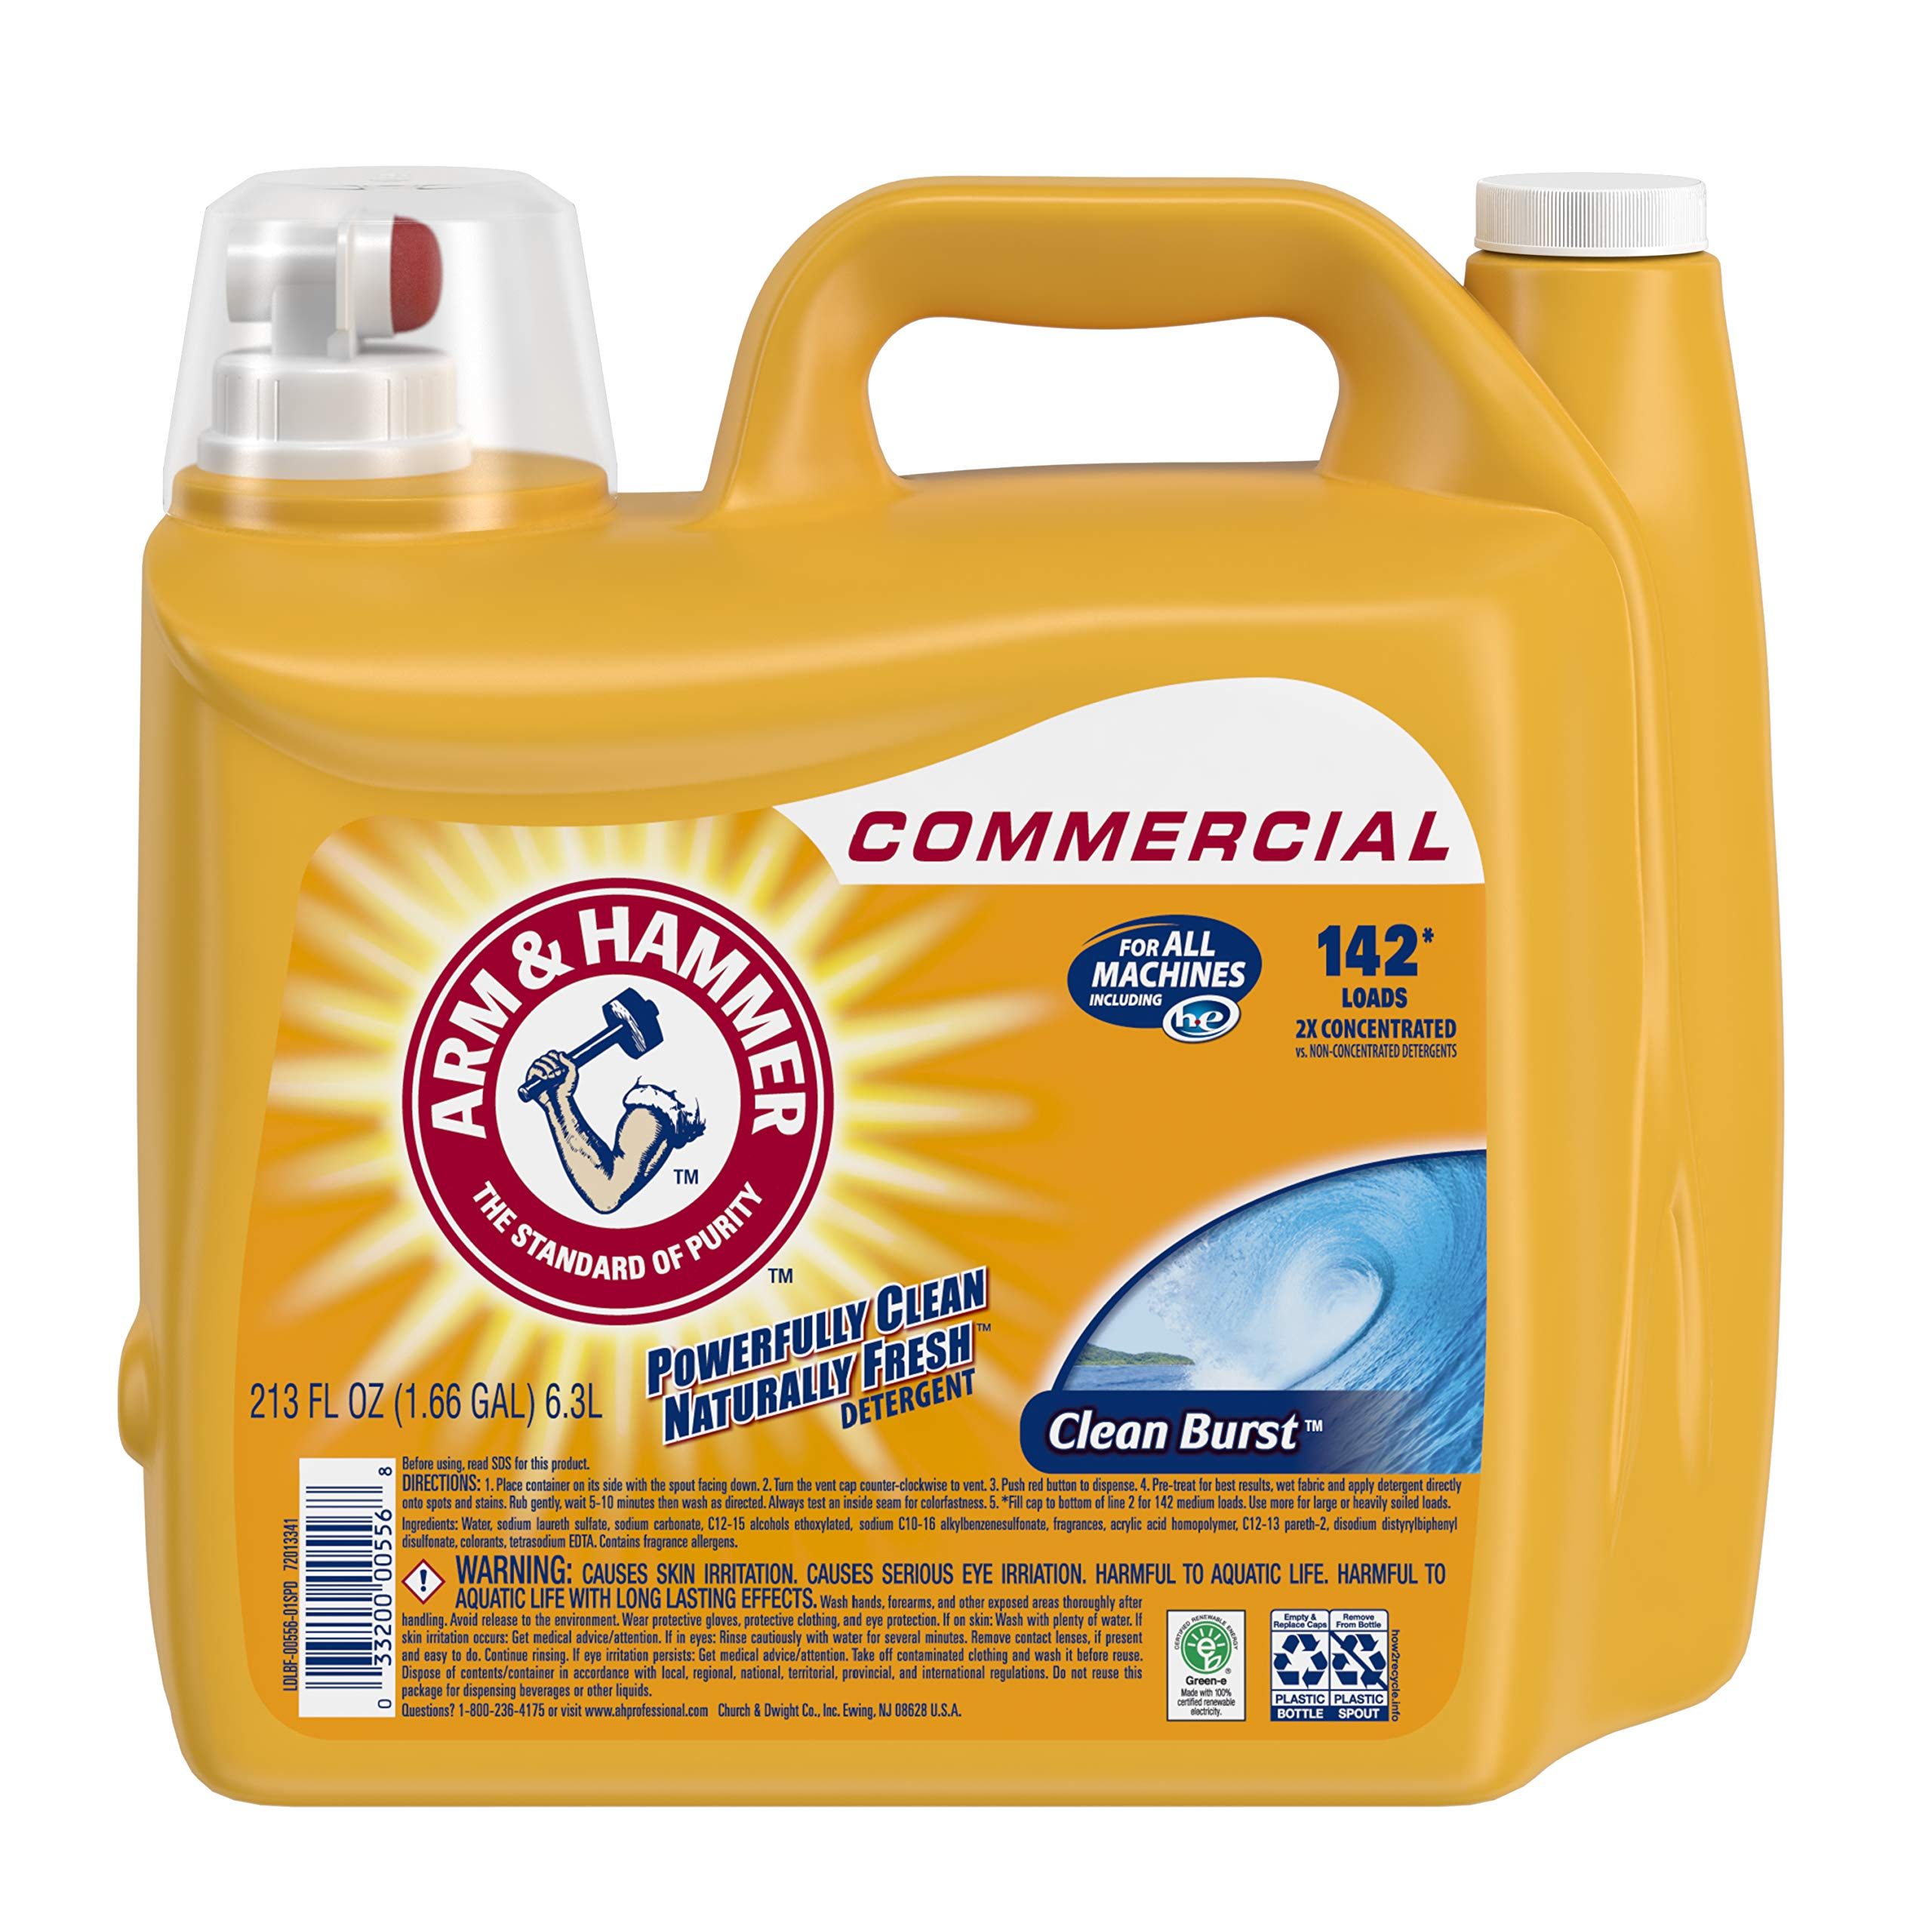 Arm & Hammer 33200-00556 Liquid Laundry Detergent, Clean Burst, 213 oz. 142 Loads (Pack of 2) by Arm & Hammer (Image #1)